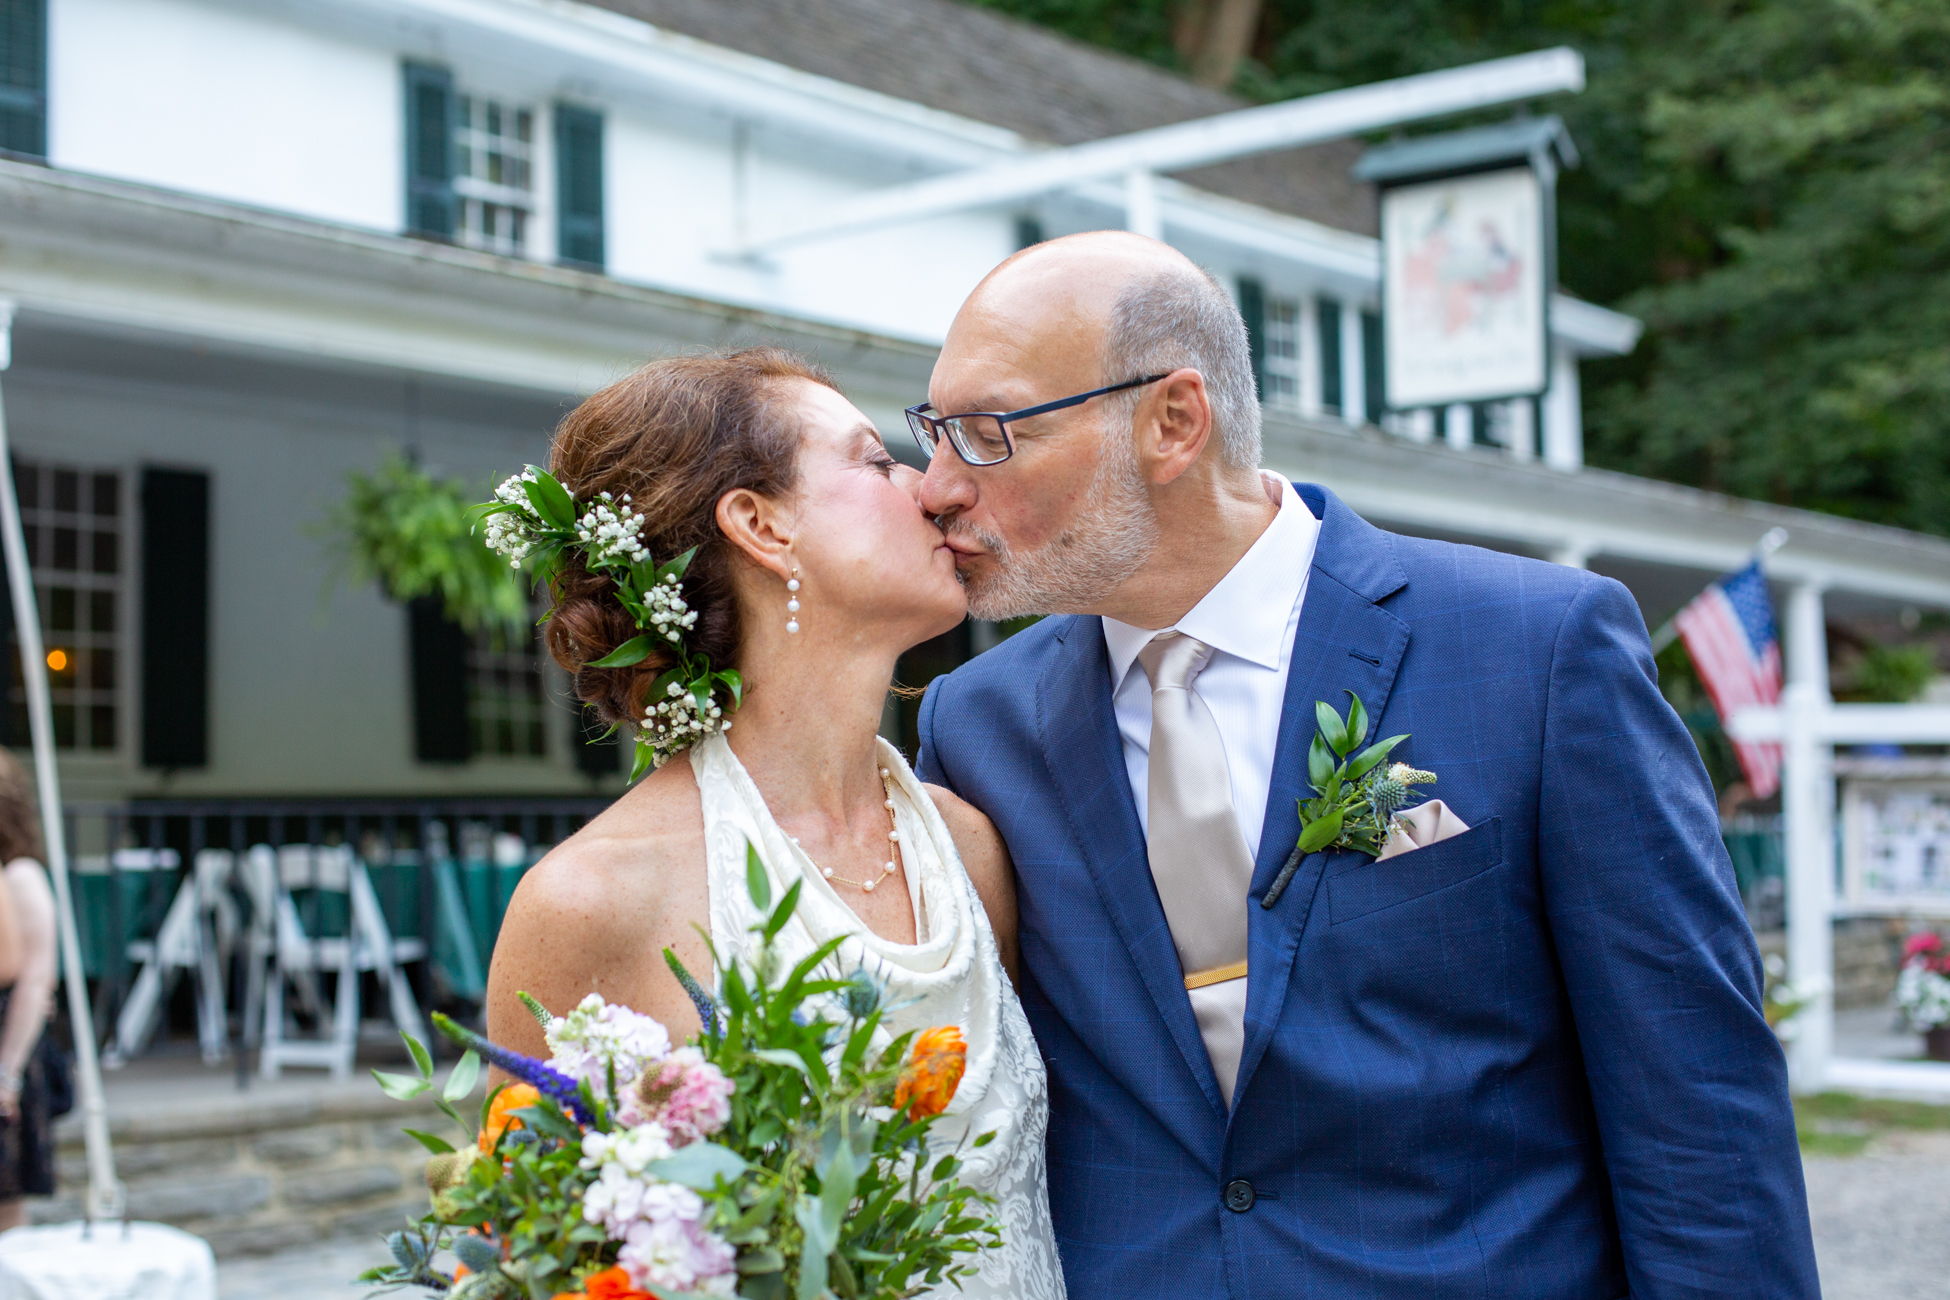 Melton-Kessler Wedding at Valley Green Inn by Avi Loren Fox LLC-42.jpg